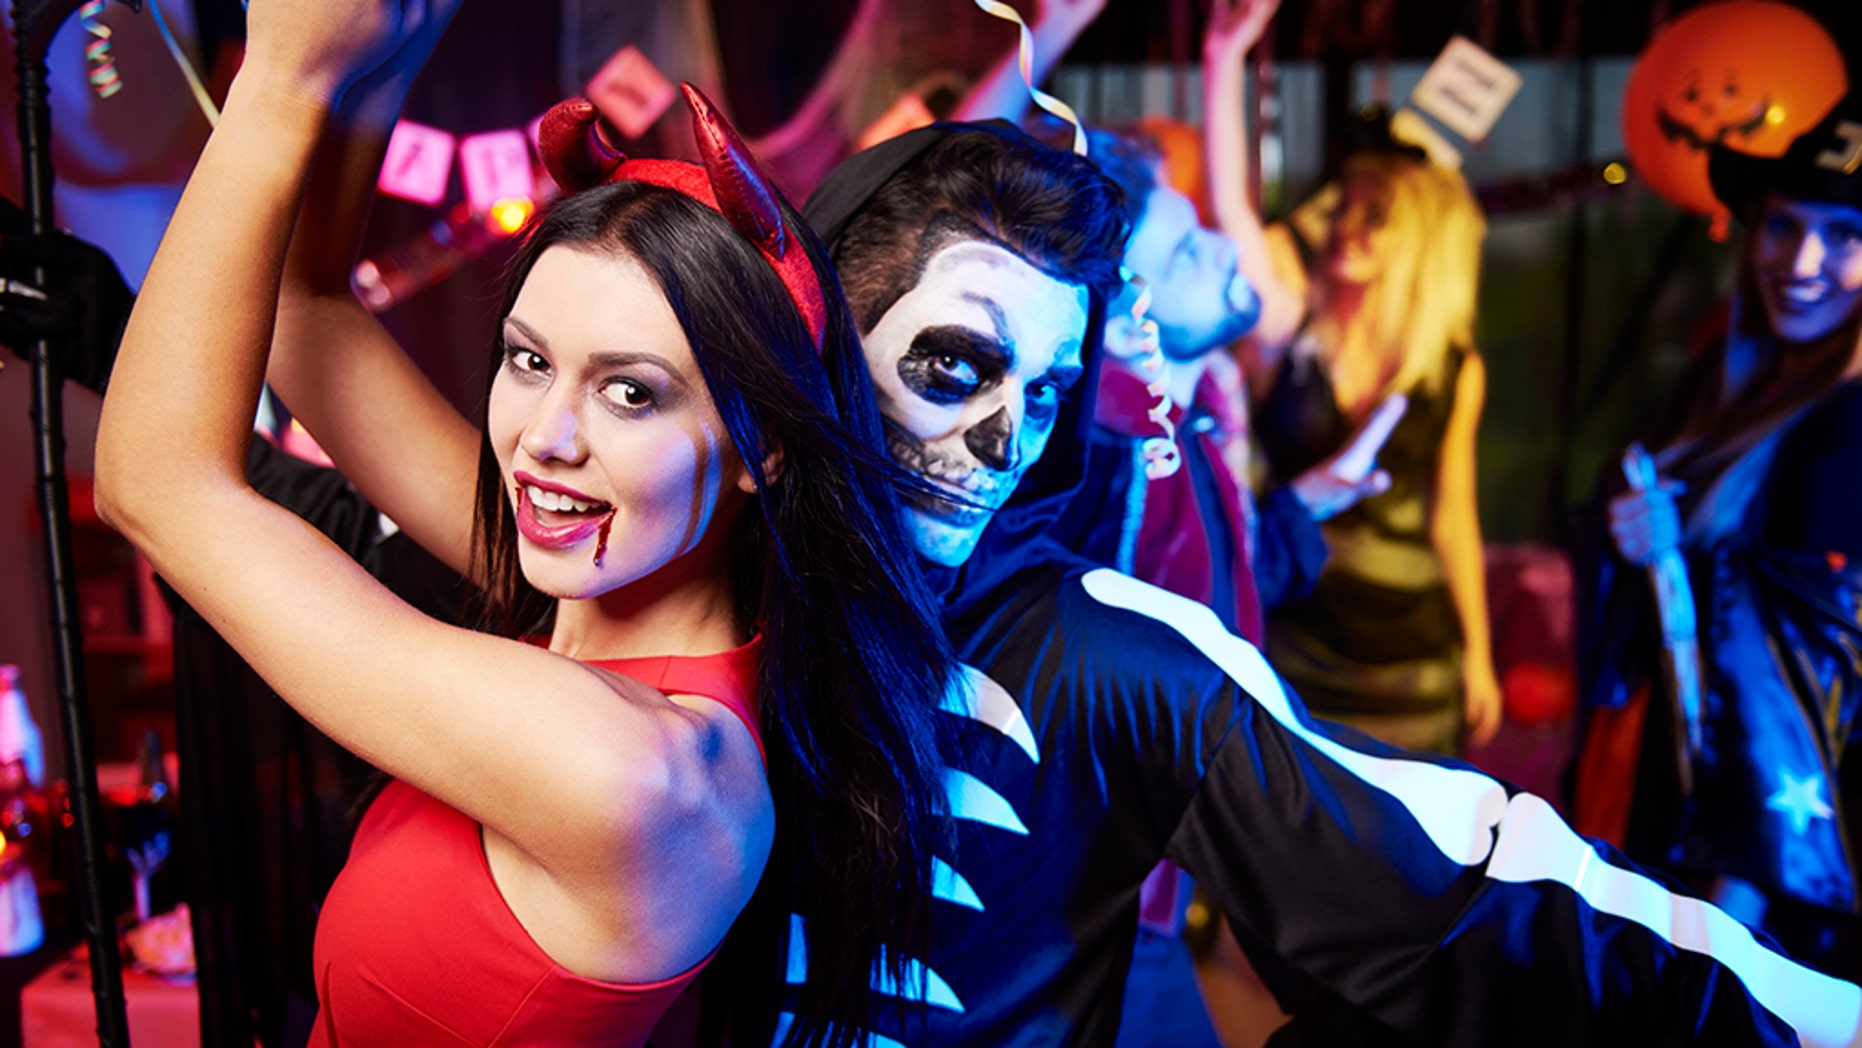 Let these five Halloween costume ideas inspire you and your significant other this year.